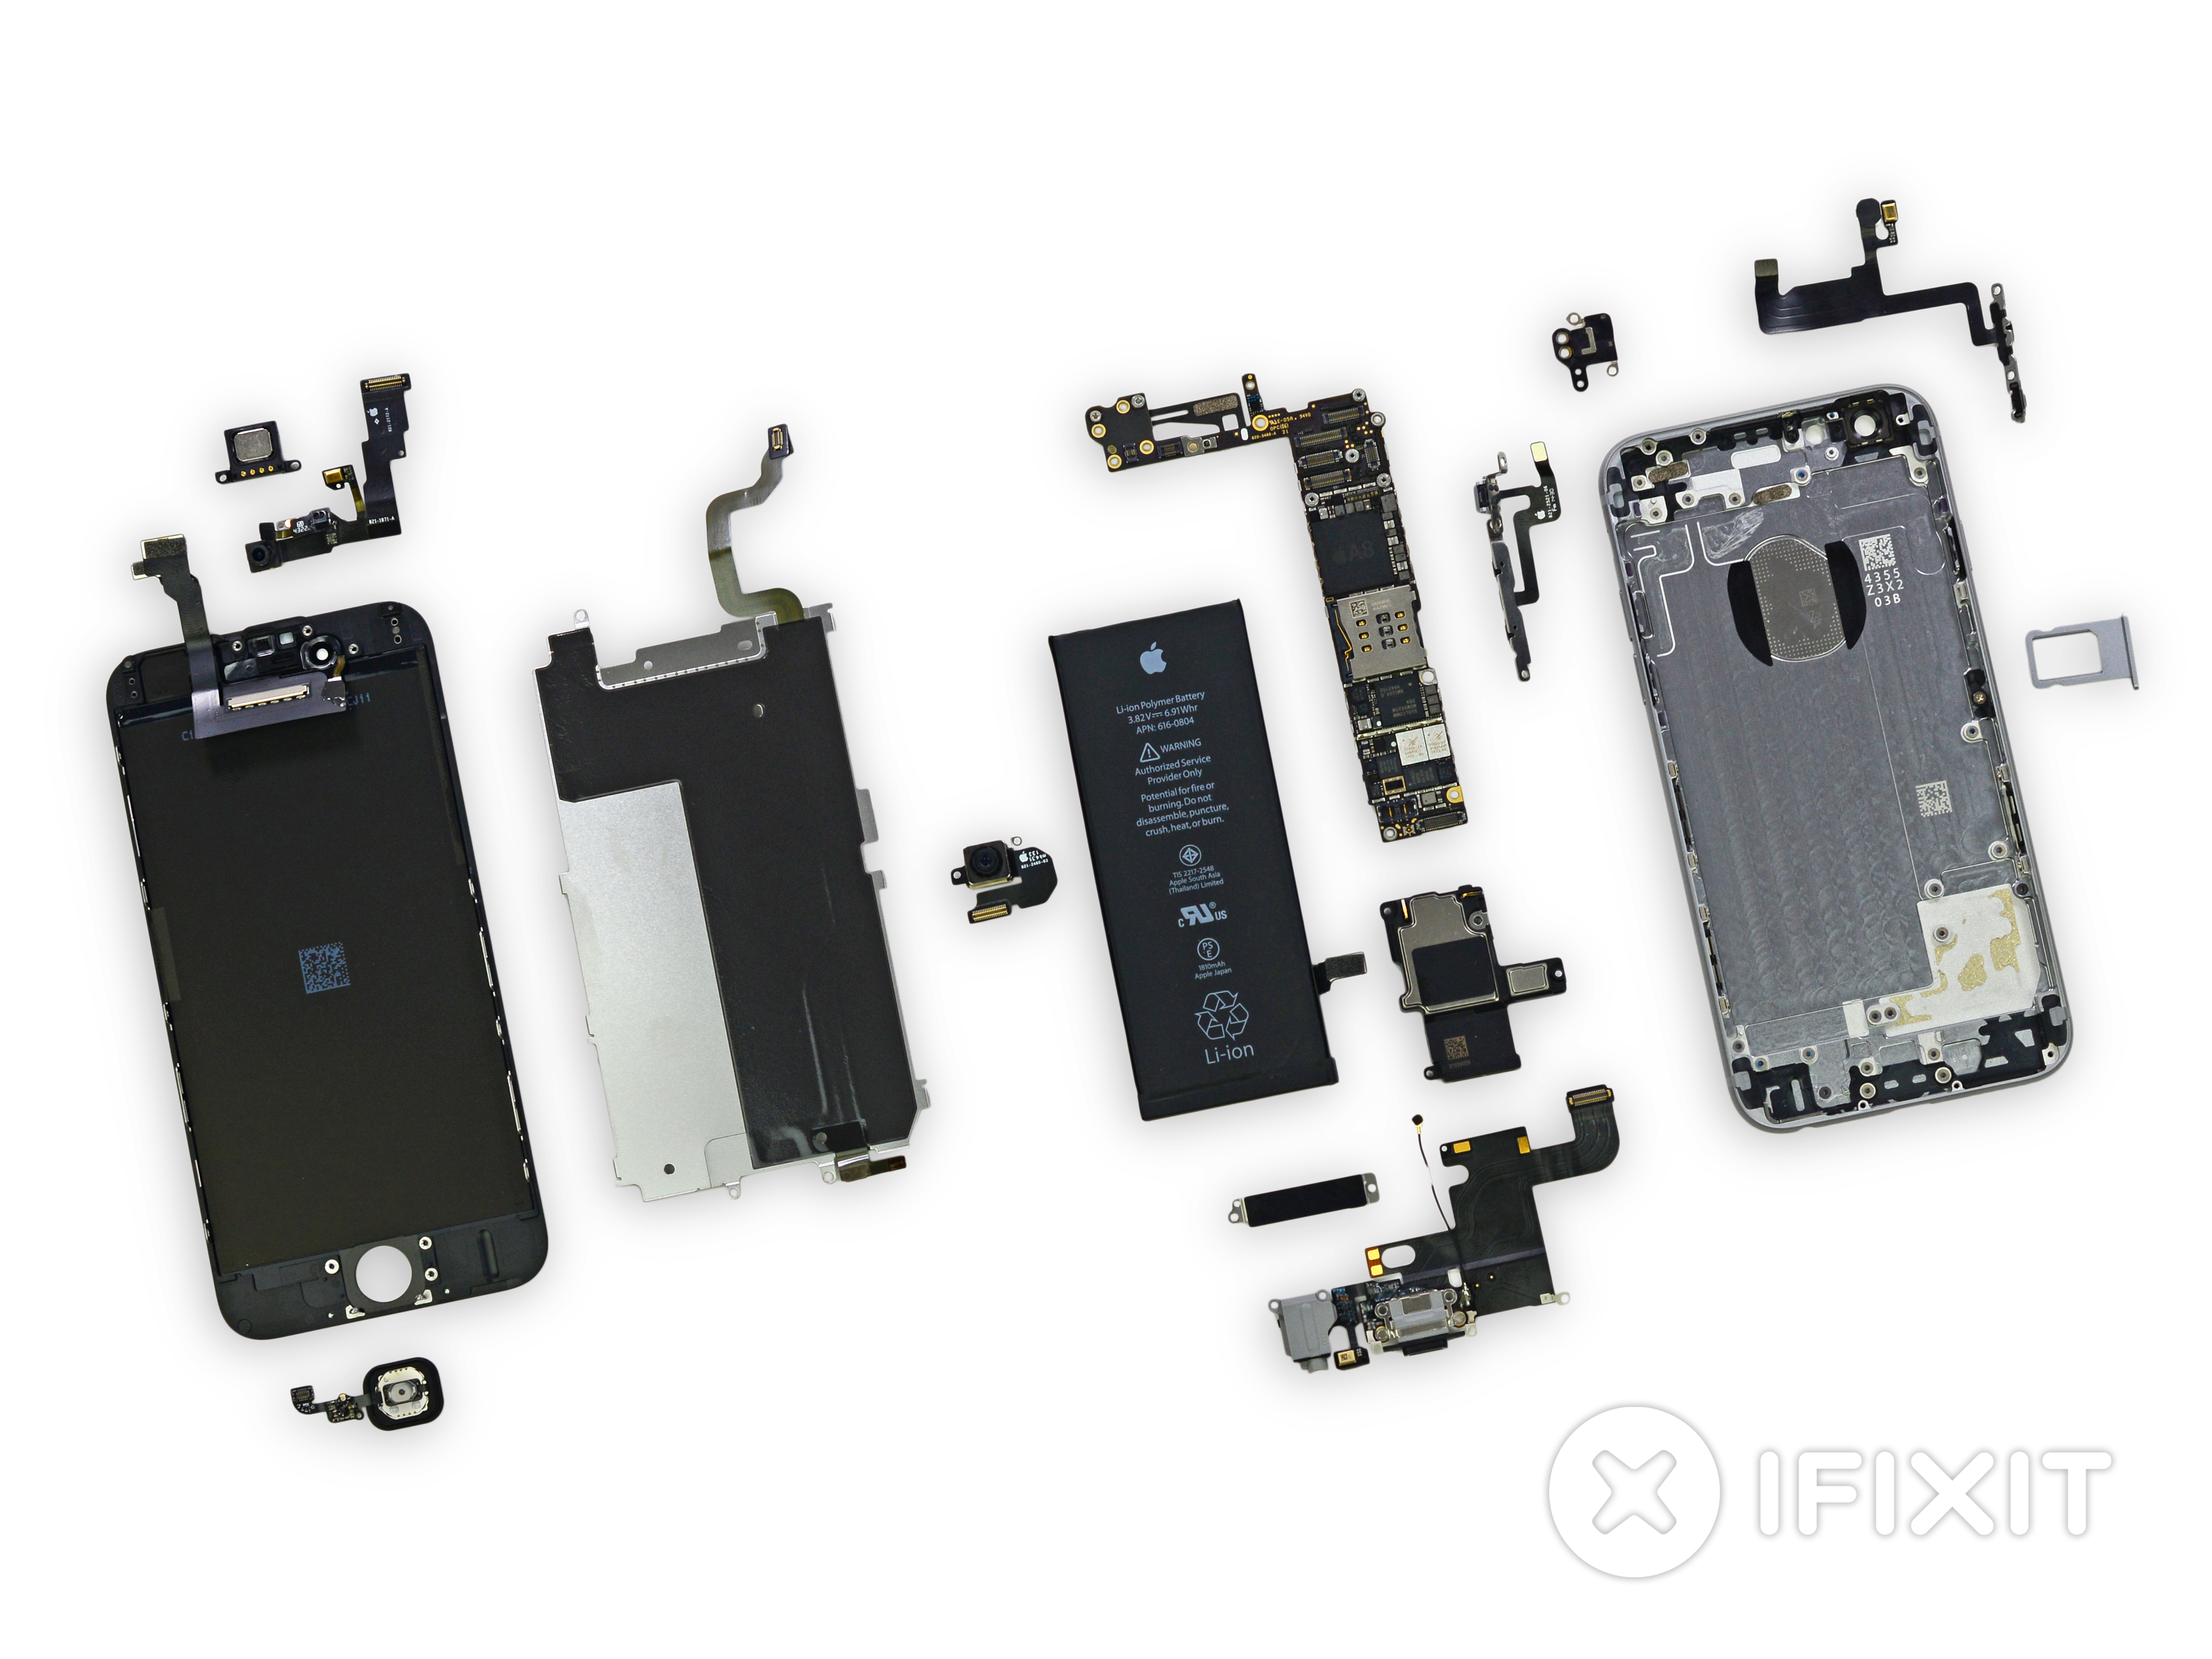 iphone 4 screw layout diagram goodman wiring air conditioner 6 teardown ifixit